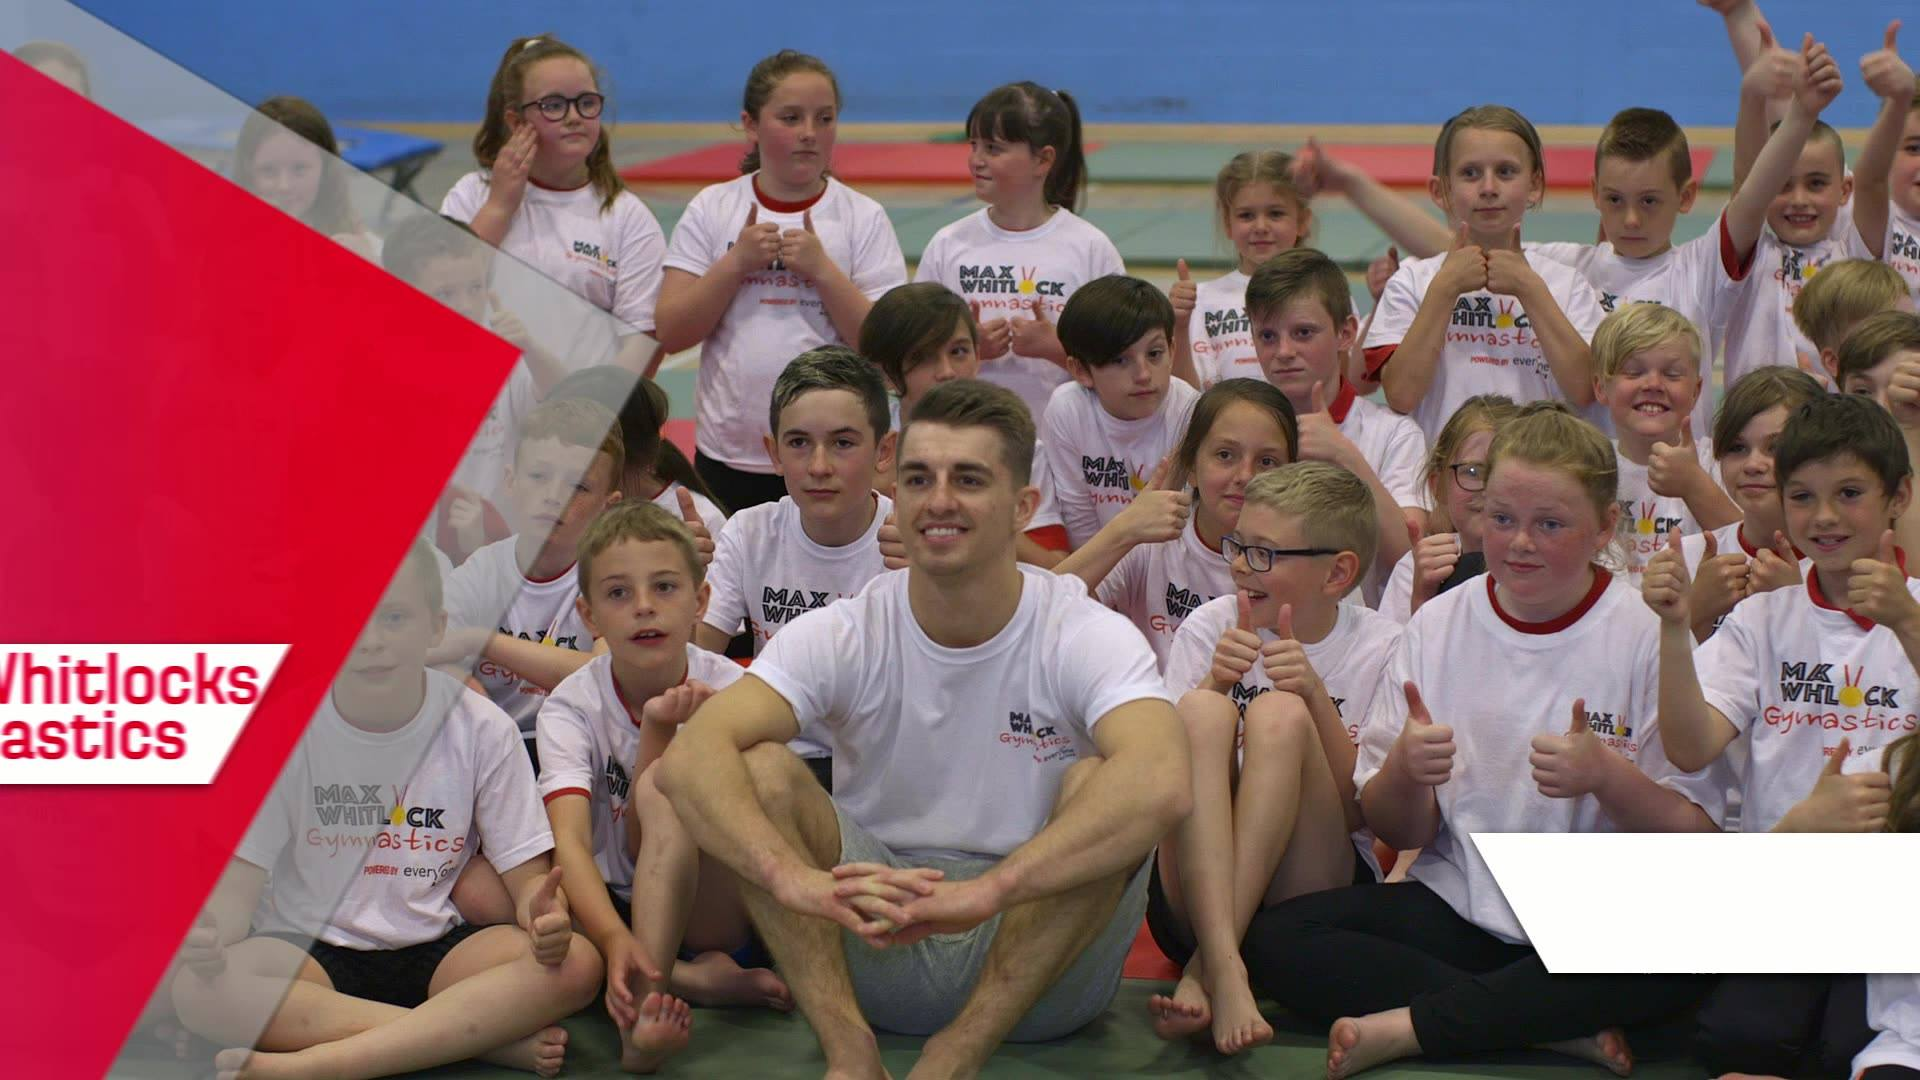 Max Whitlock Gymnastics - Powered by Everyone Active